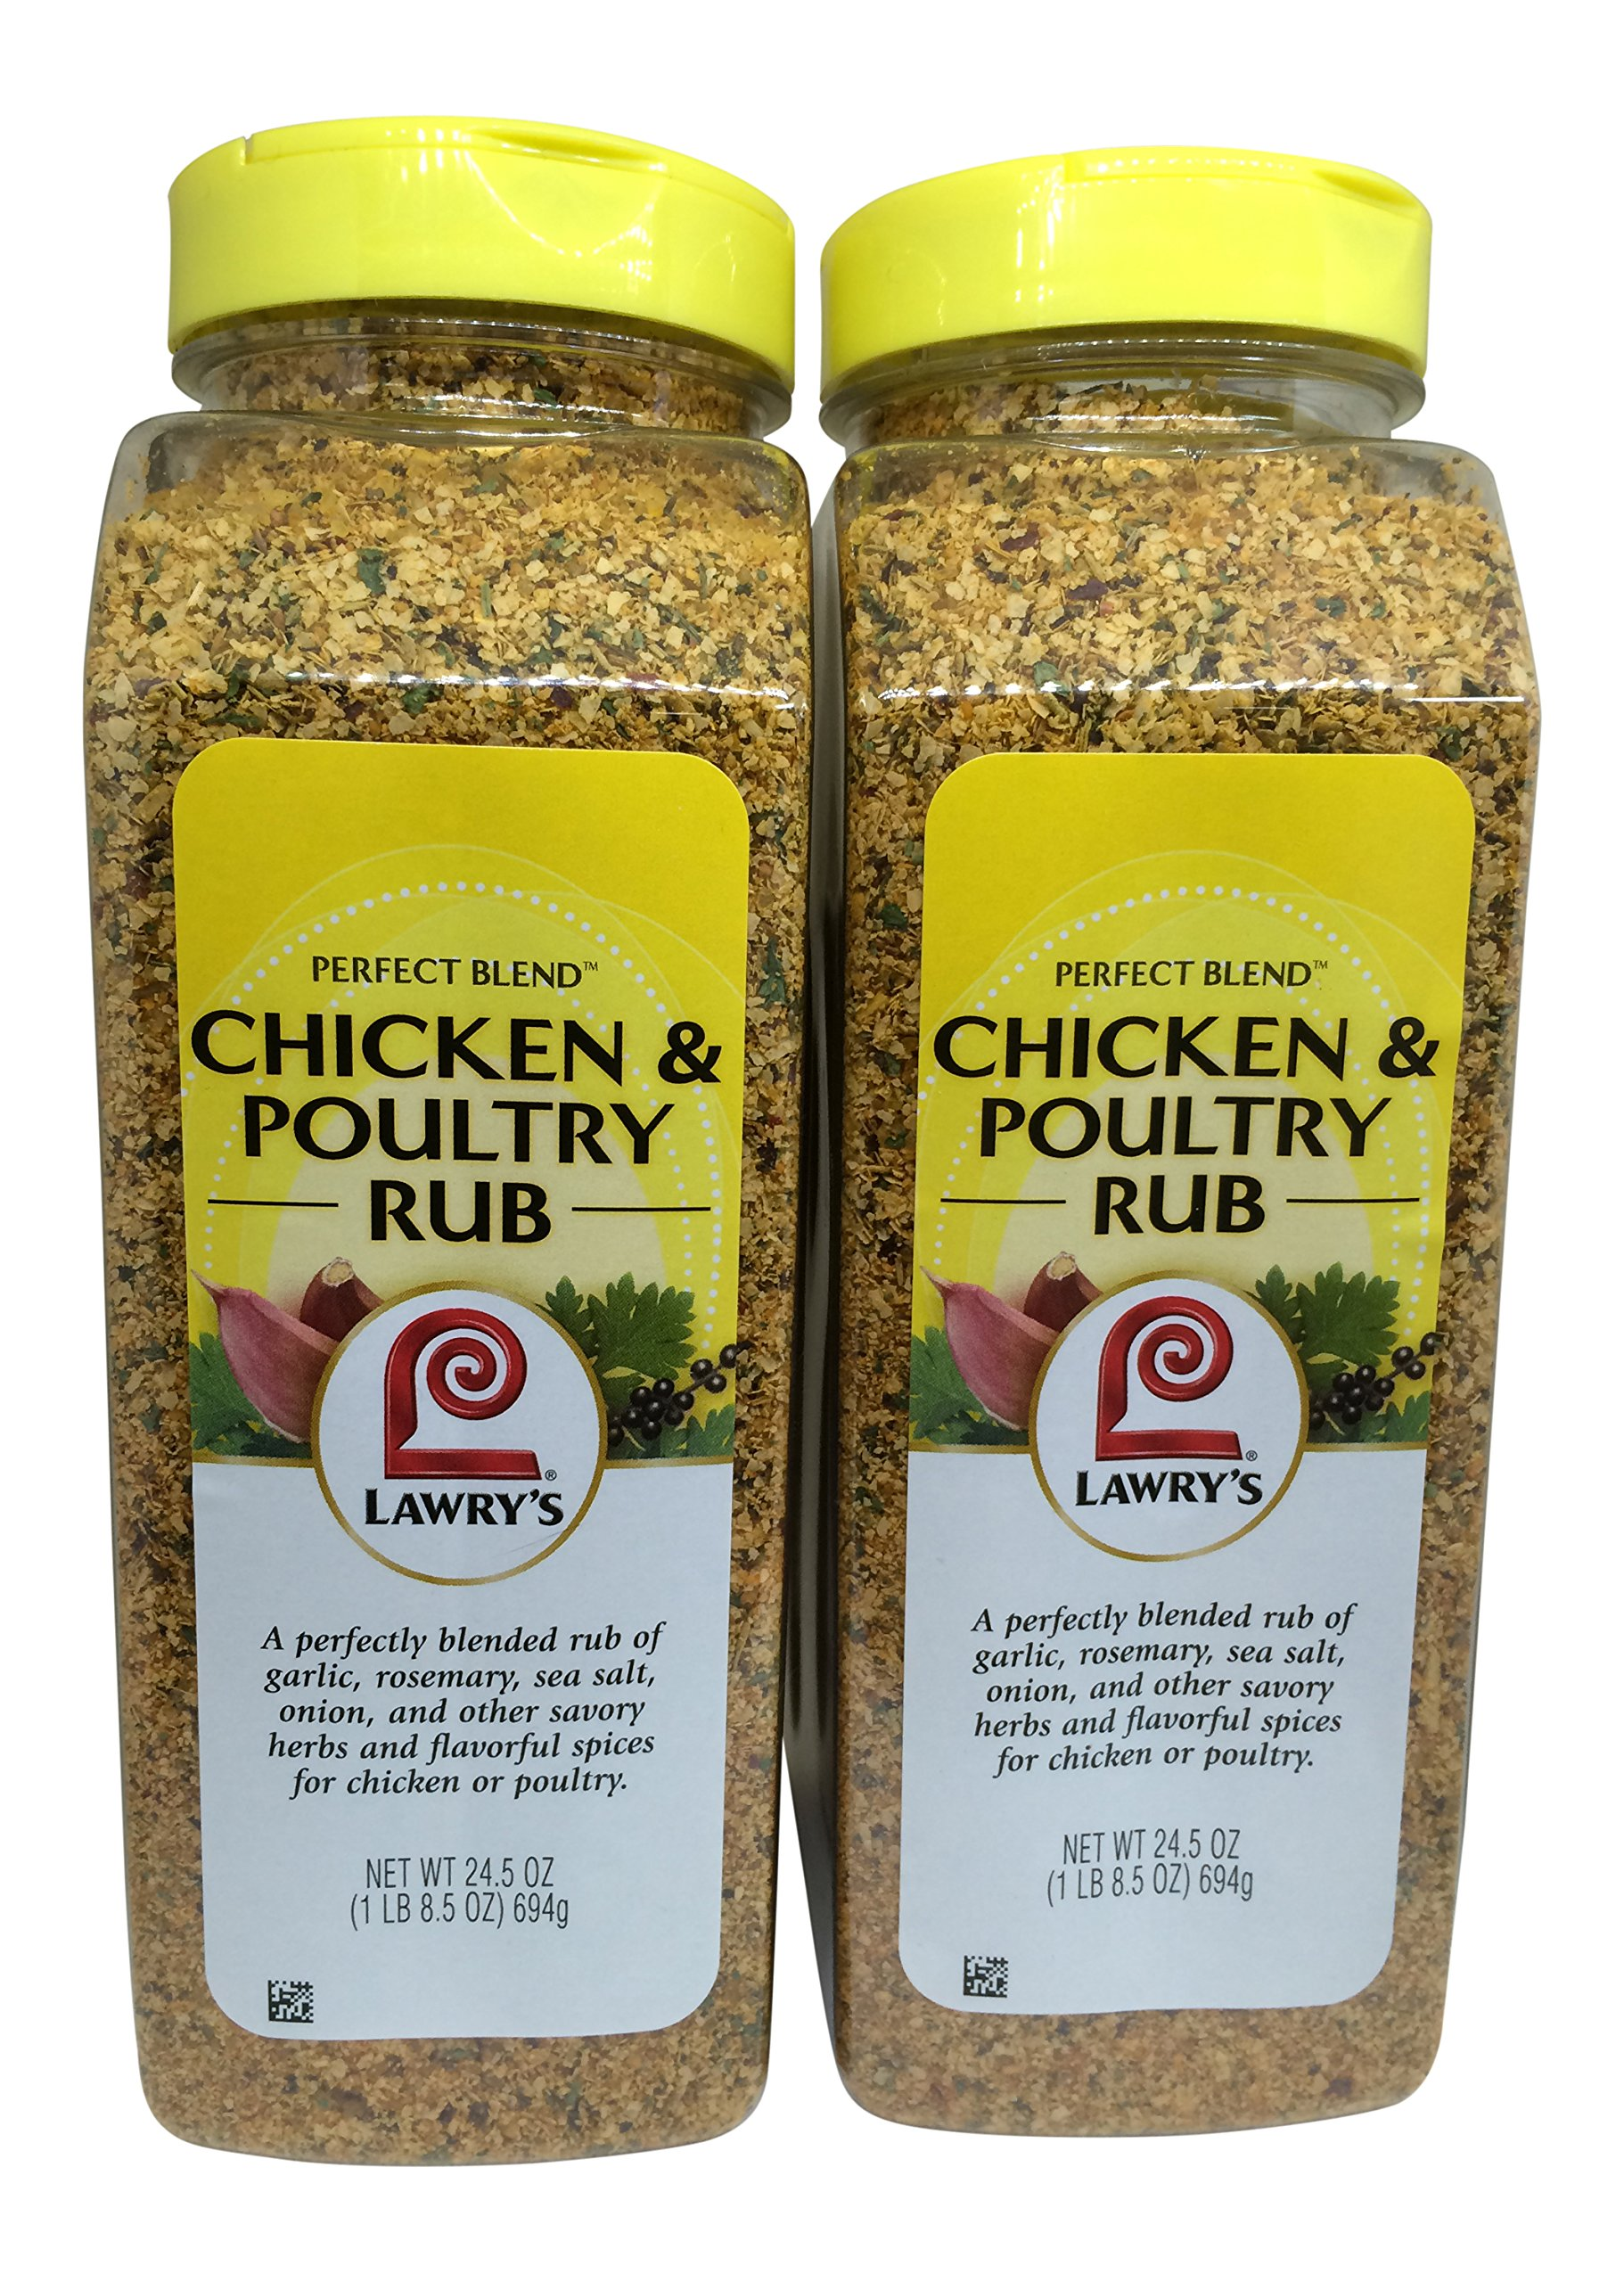 Lawrys Perfect Blend Chicken & Poultry Rub (2 Pack) by Lawry's Perfect Blend (Image #1)